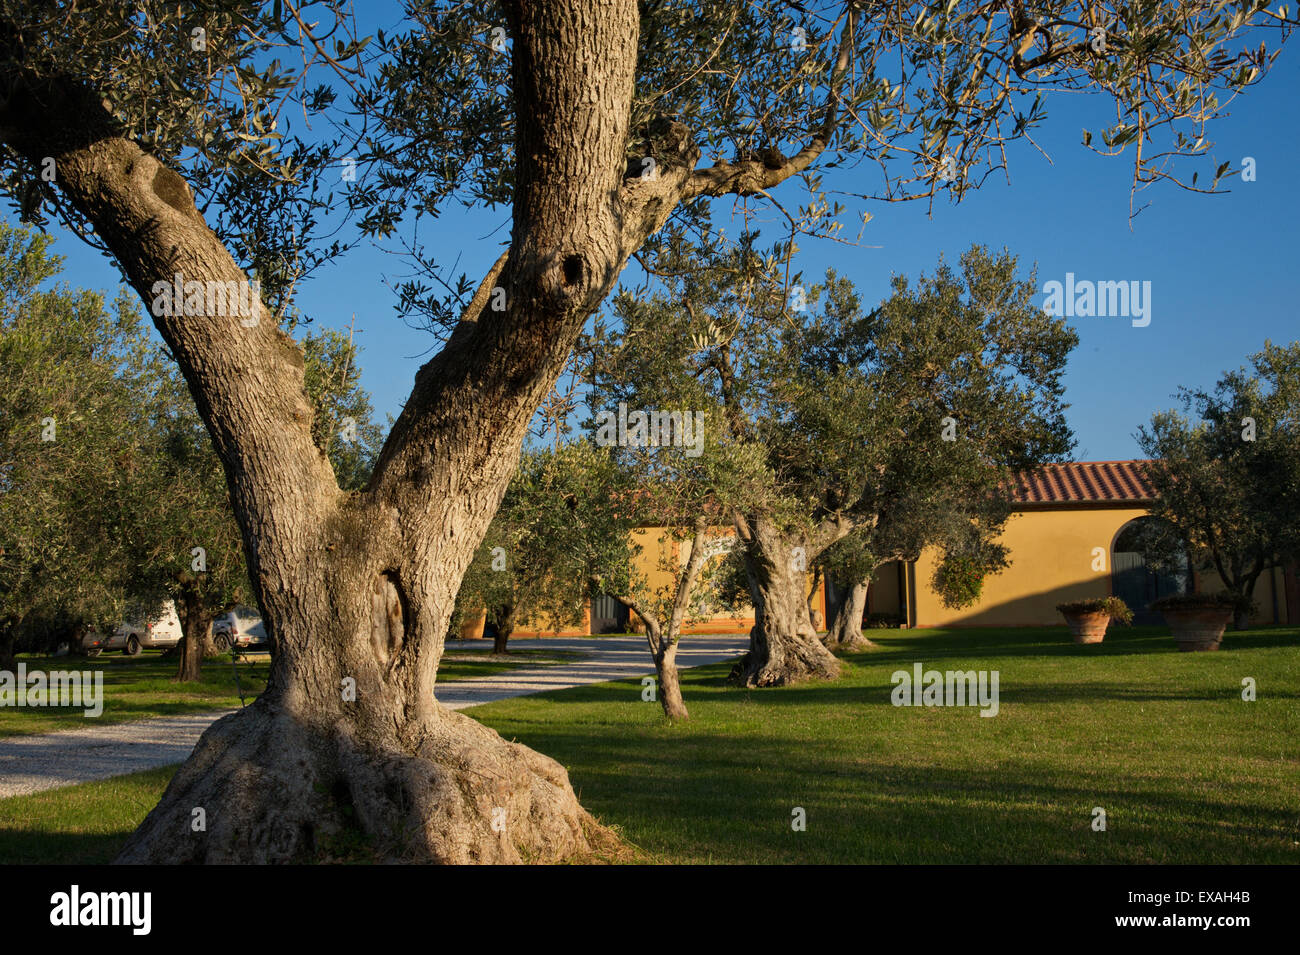 Olive Trees In Garden Stock Photos & Olive Trees In Garden Stock ...